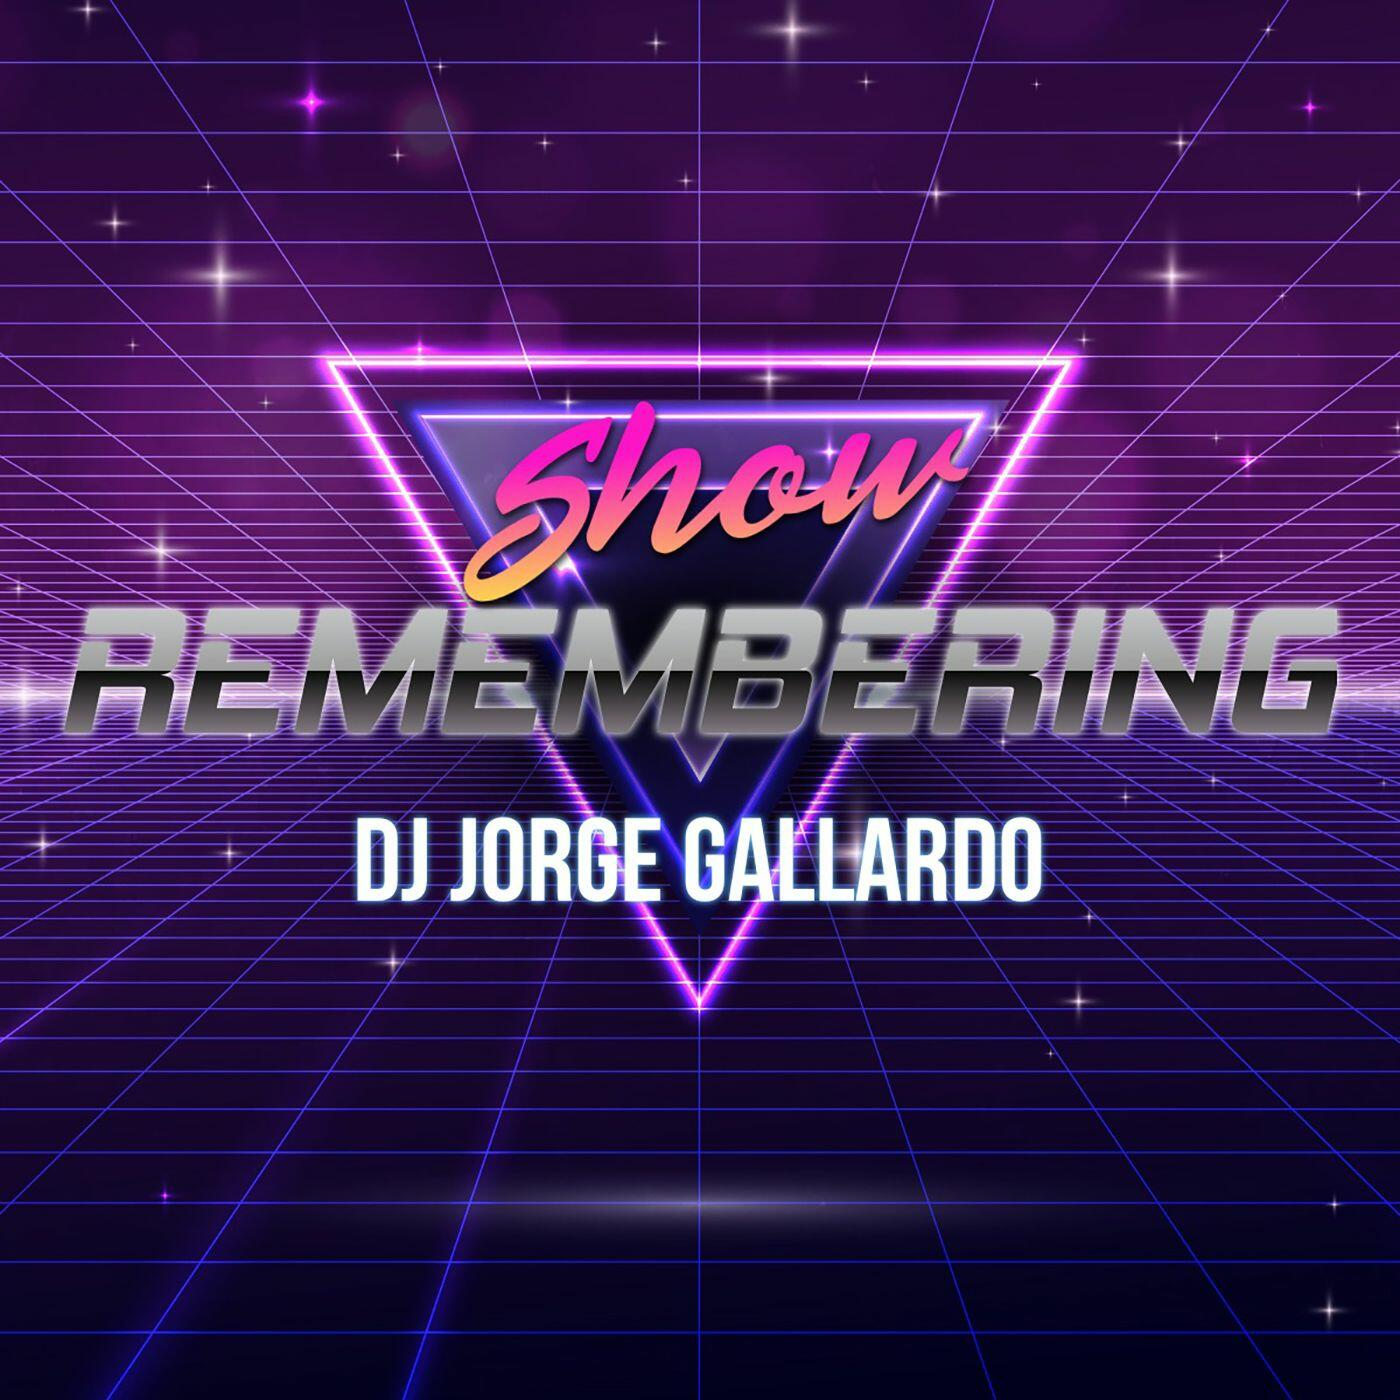 Remembering Show By DJ Jorge Gallardo